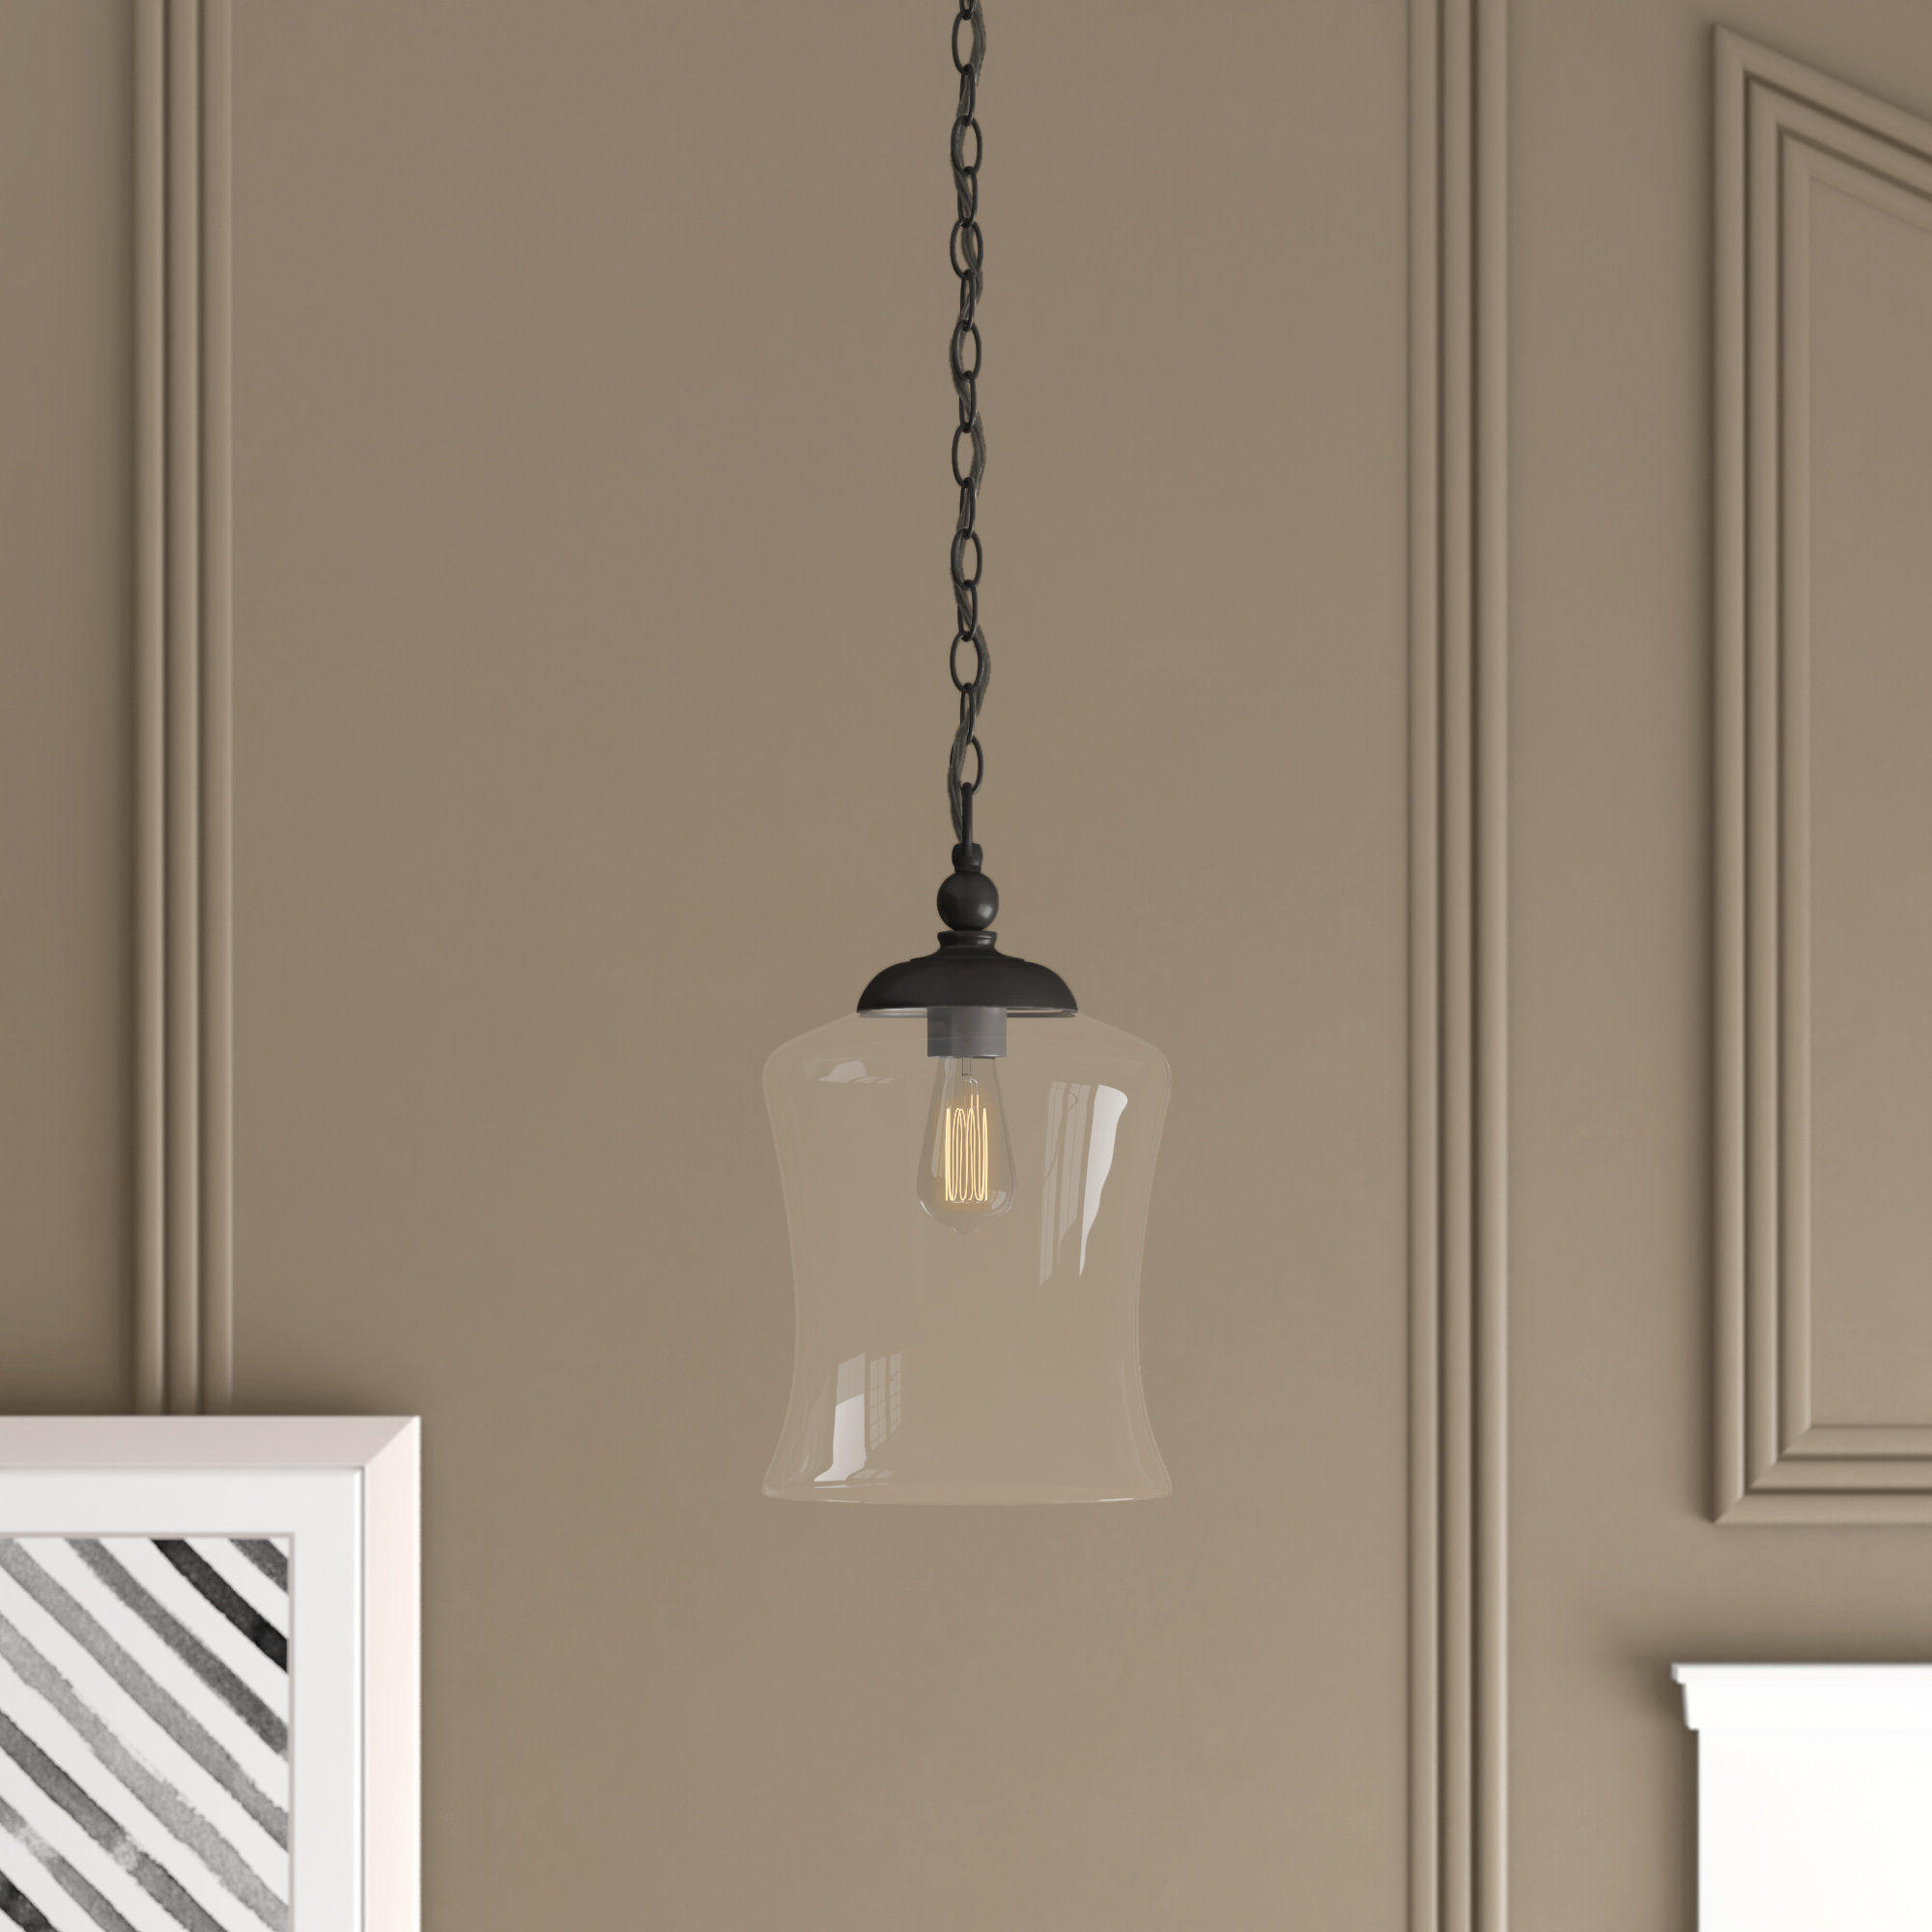 Wentzville 1 Light Single Bell Pendant Intended For Widely Used Moyer 1 Light Single Cylinder Pendants (View 12 of 25)